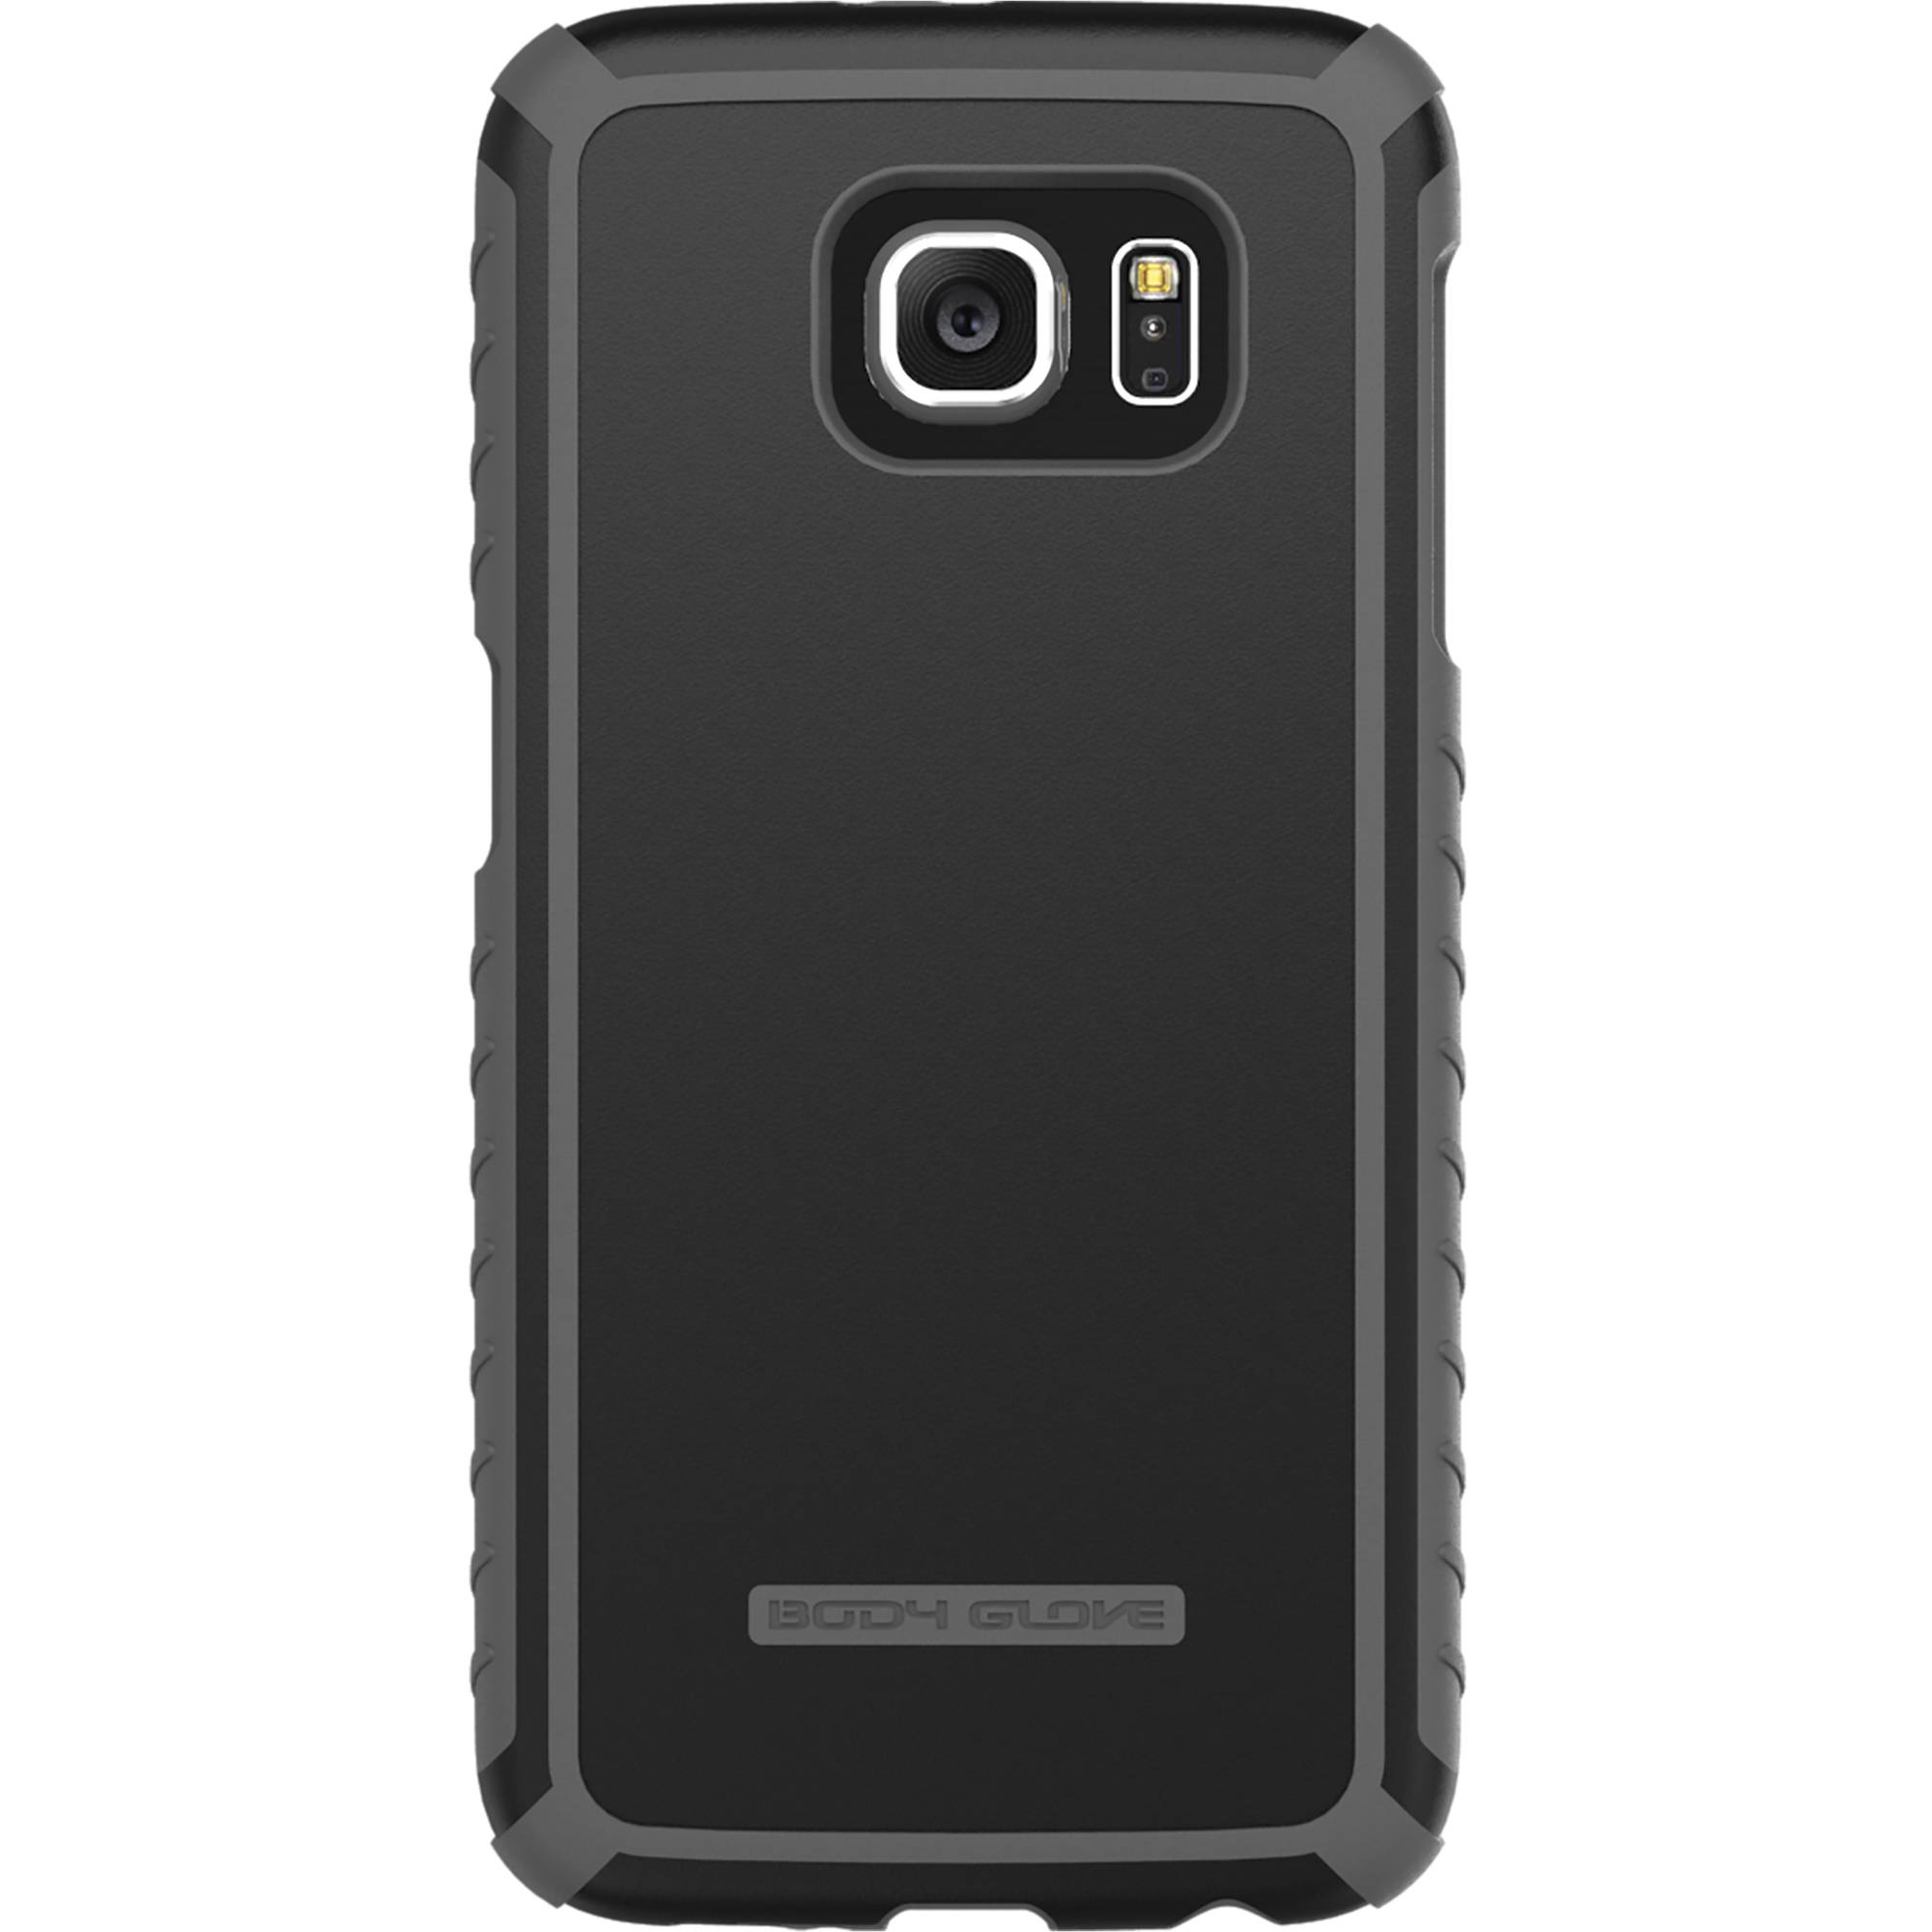 Body Glove Tactic Case for Samsung Galaxy S6 by Fellowes